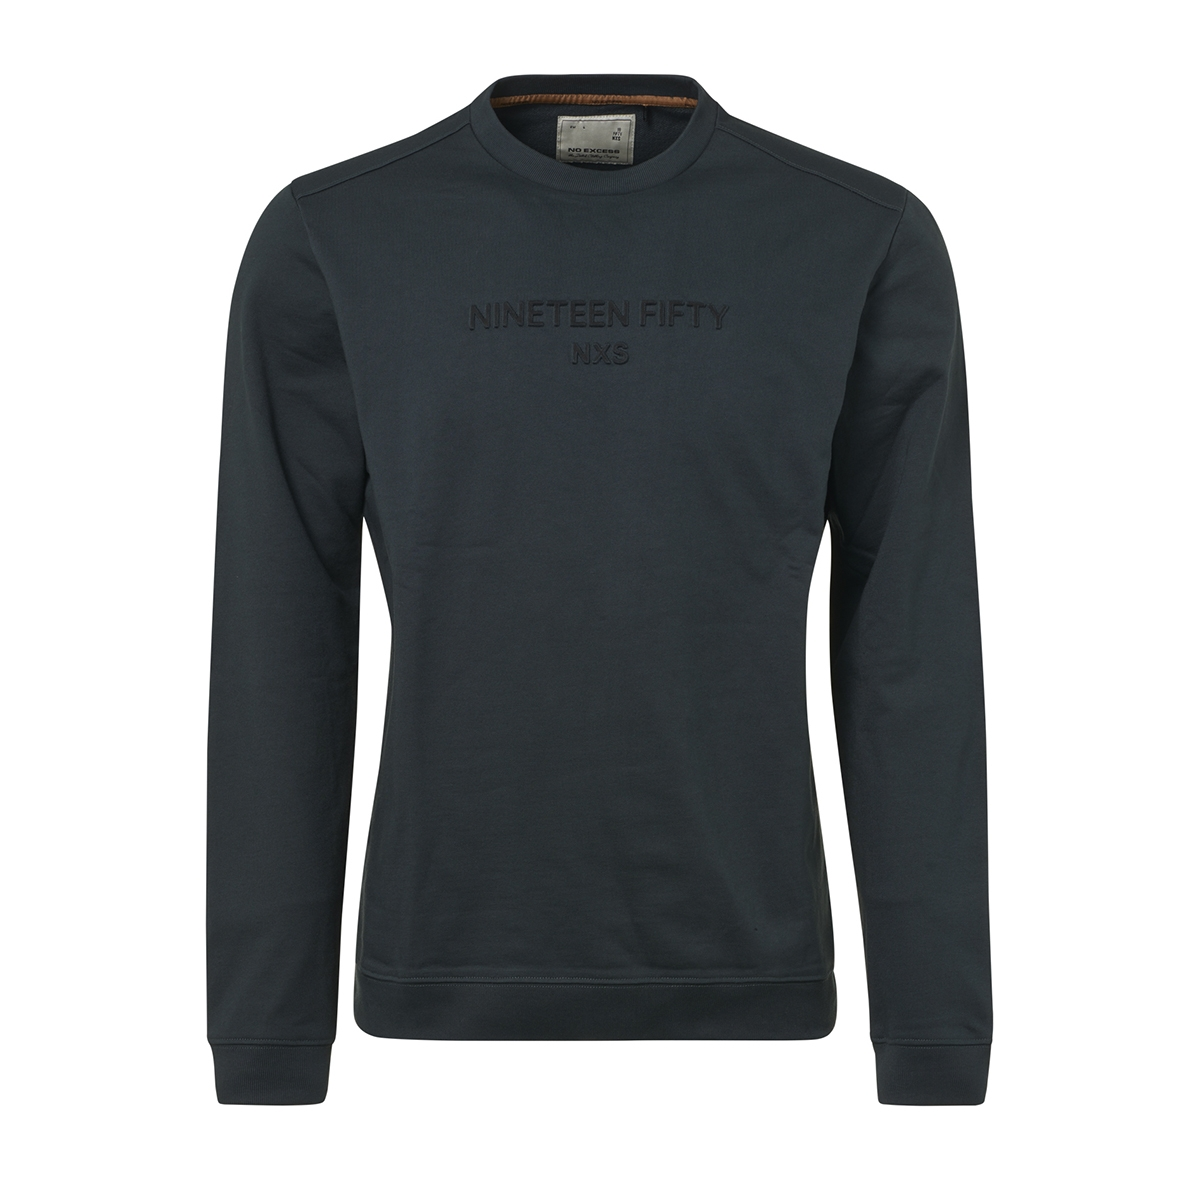 crewneck sweater with logo 92130750 no-excess sweater 157 dk seagreen